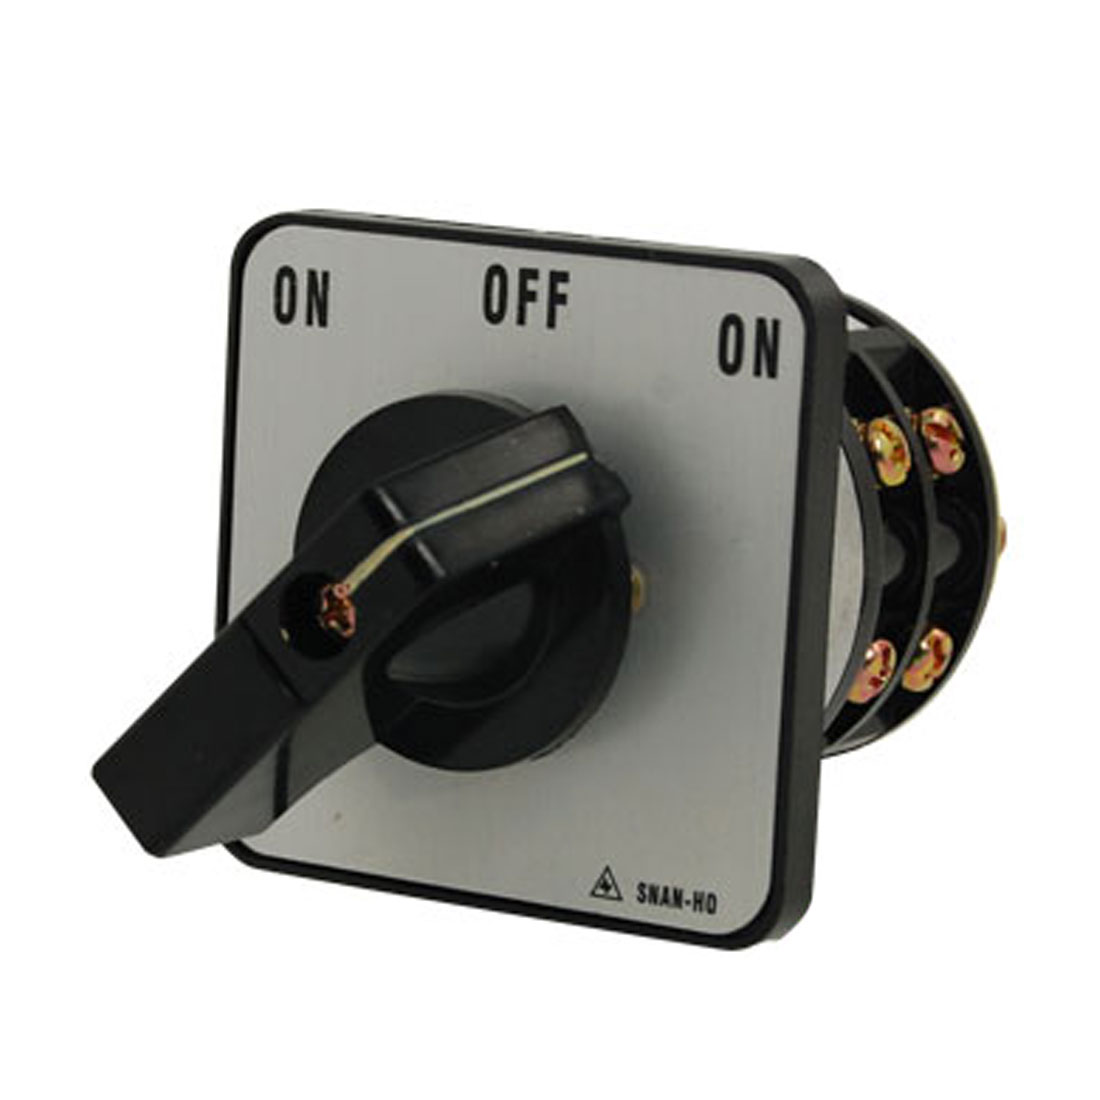 Electrical AC 220V 2.2kw ON-OFF-ON Rotary Cam Changeover Switch